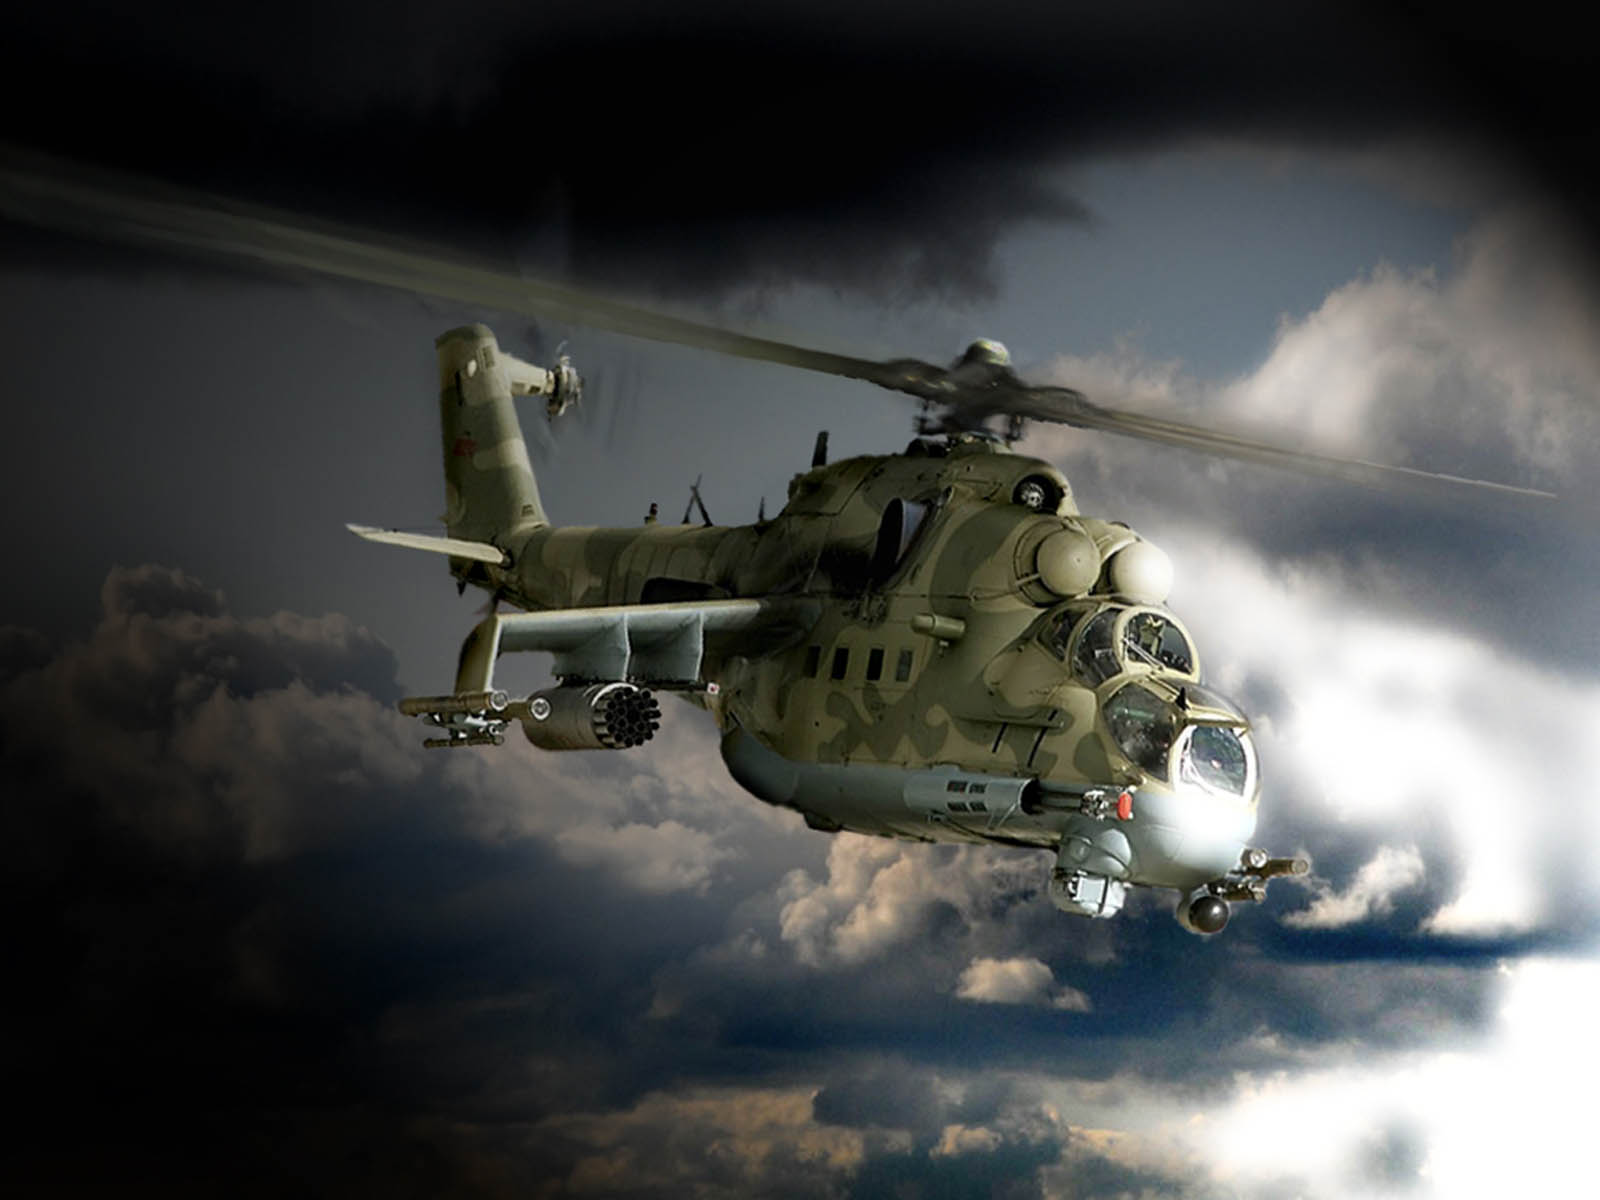 Tag mi 24 Hind Helicopter Wallpapers Backgrounds Paos Pictures 1600x1200